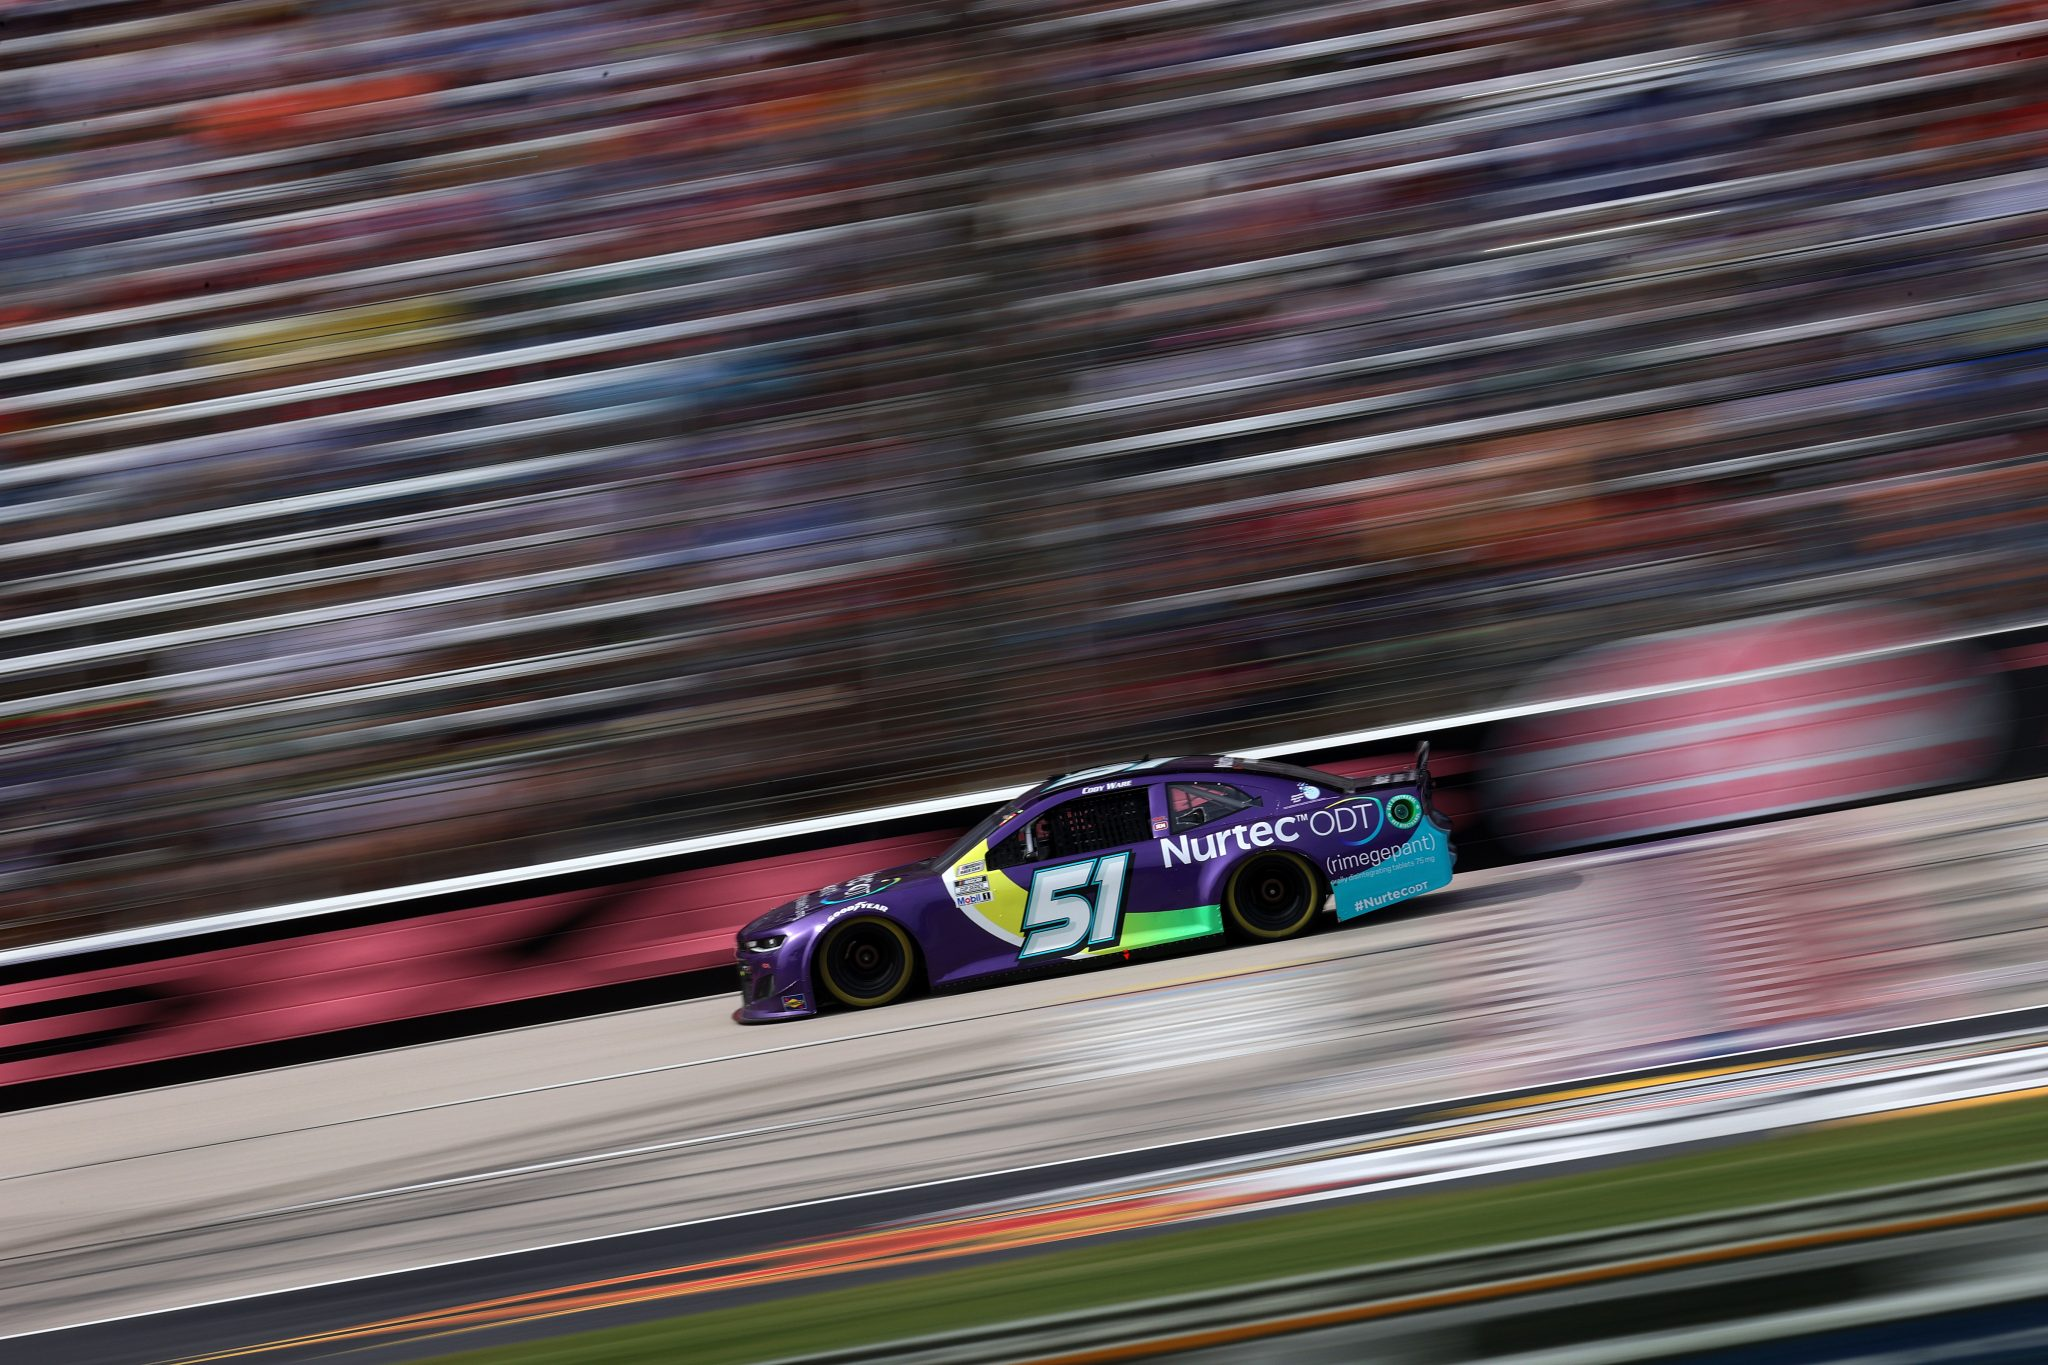 FORT WORTH, TEXAS - OCTOBER 17: Cody Ware, driver of the #51 Nurtec ODT Chevrolet, drives during the NASCAR Cup Series Autotrader EchoPark Automotive 500 at Texas Motor Speedway on October 17, 2021 in Fort Worth, Texas. (Photo by Chris Graythen/Getty Images) | Getty Images